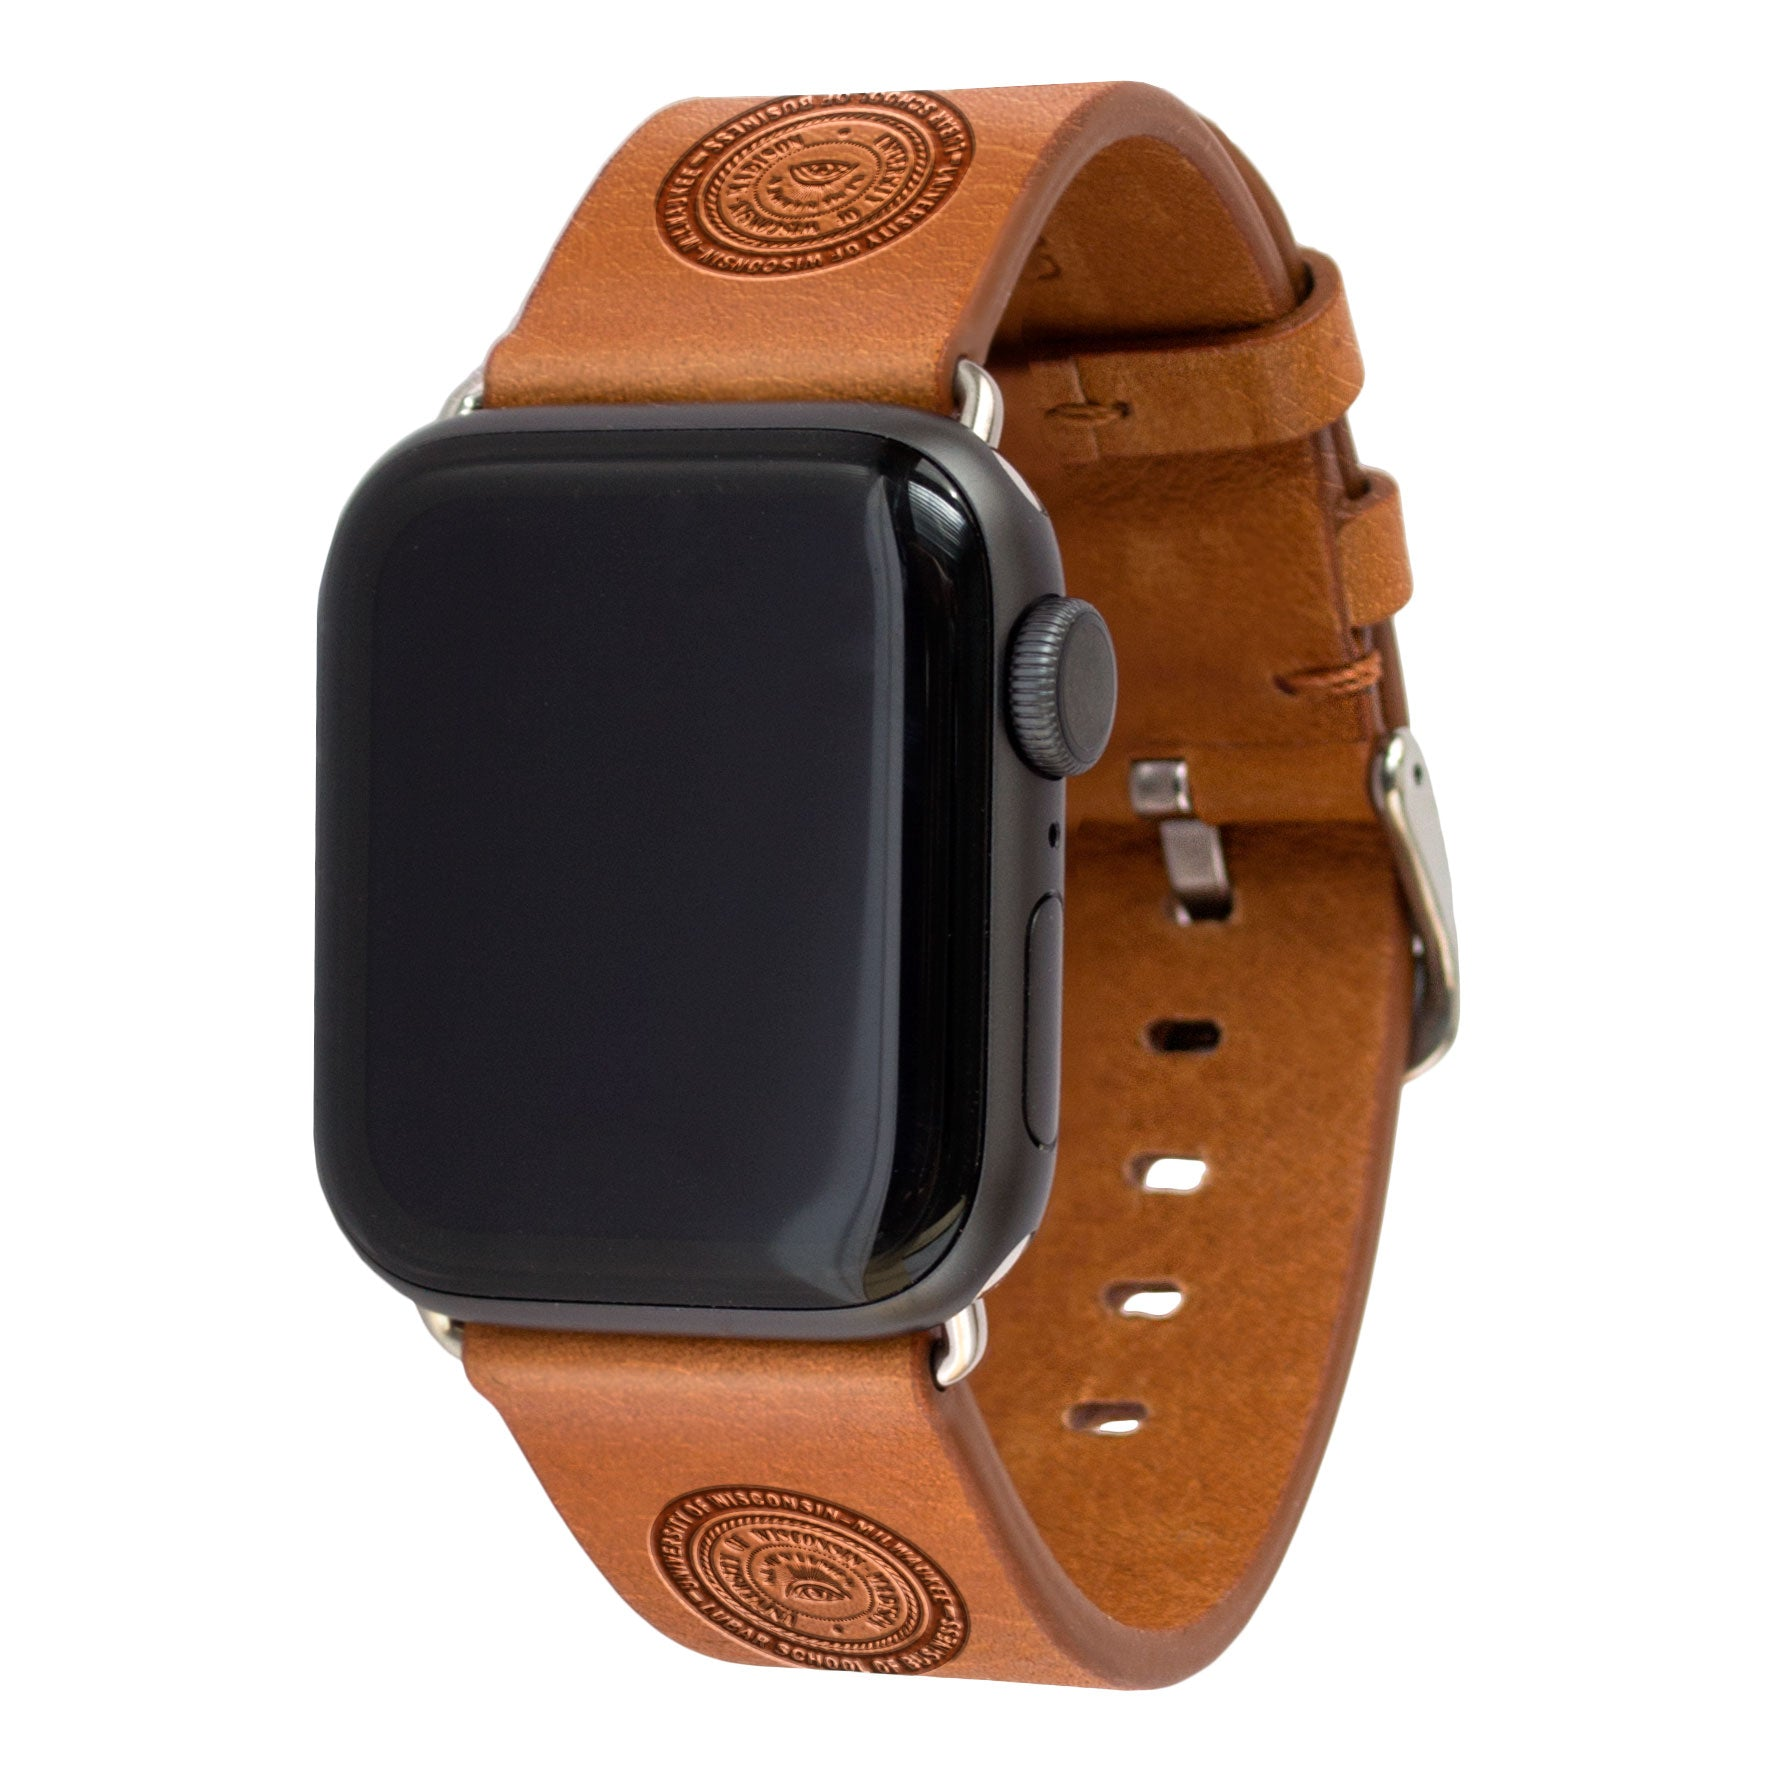 Wisconsin School of Business Leather Apple Watch Band